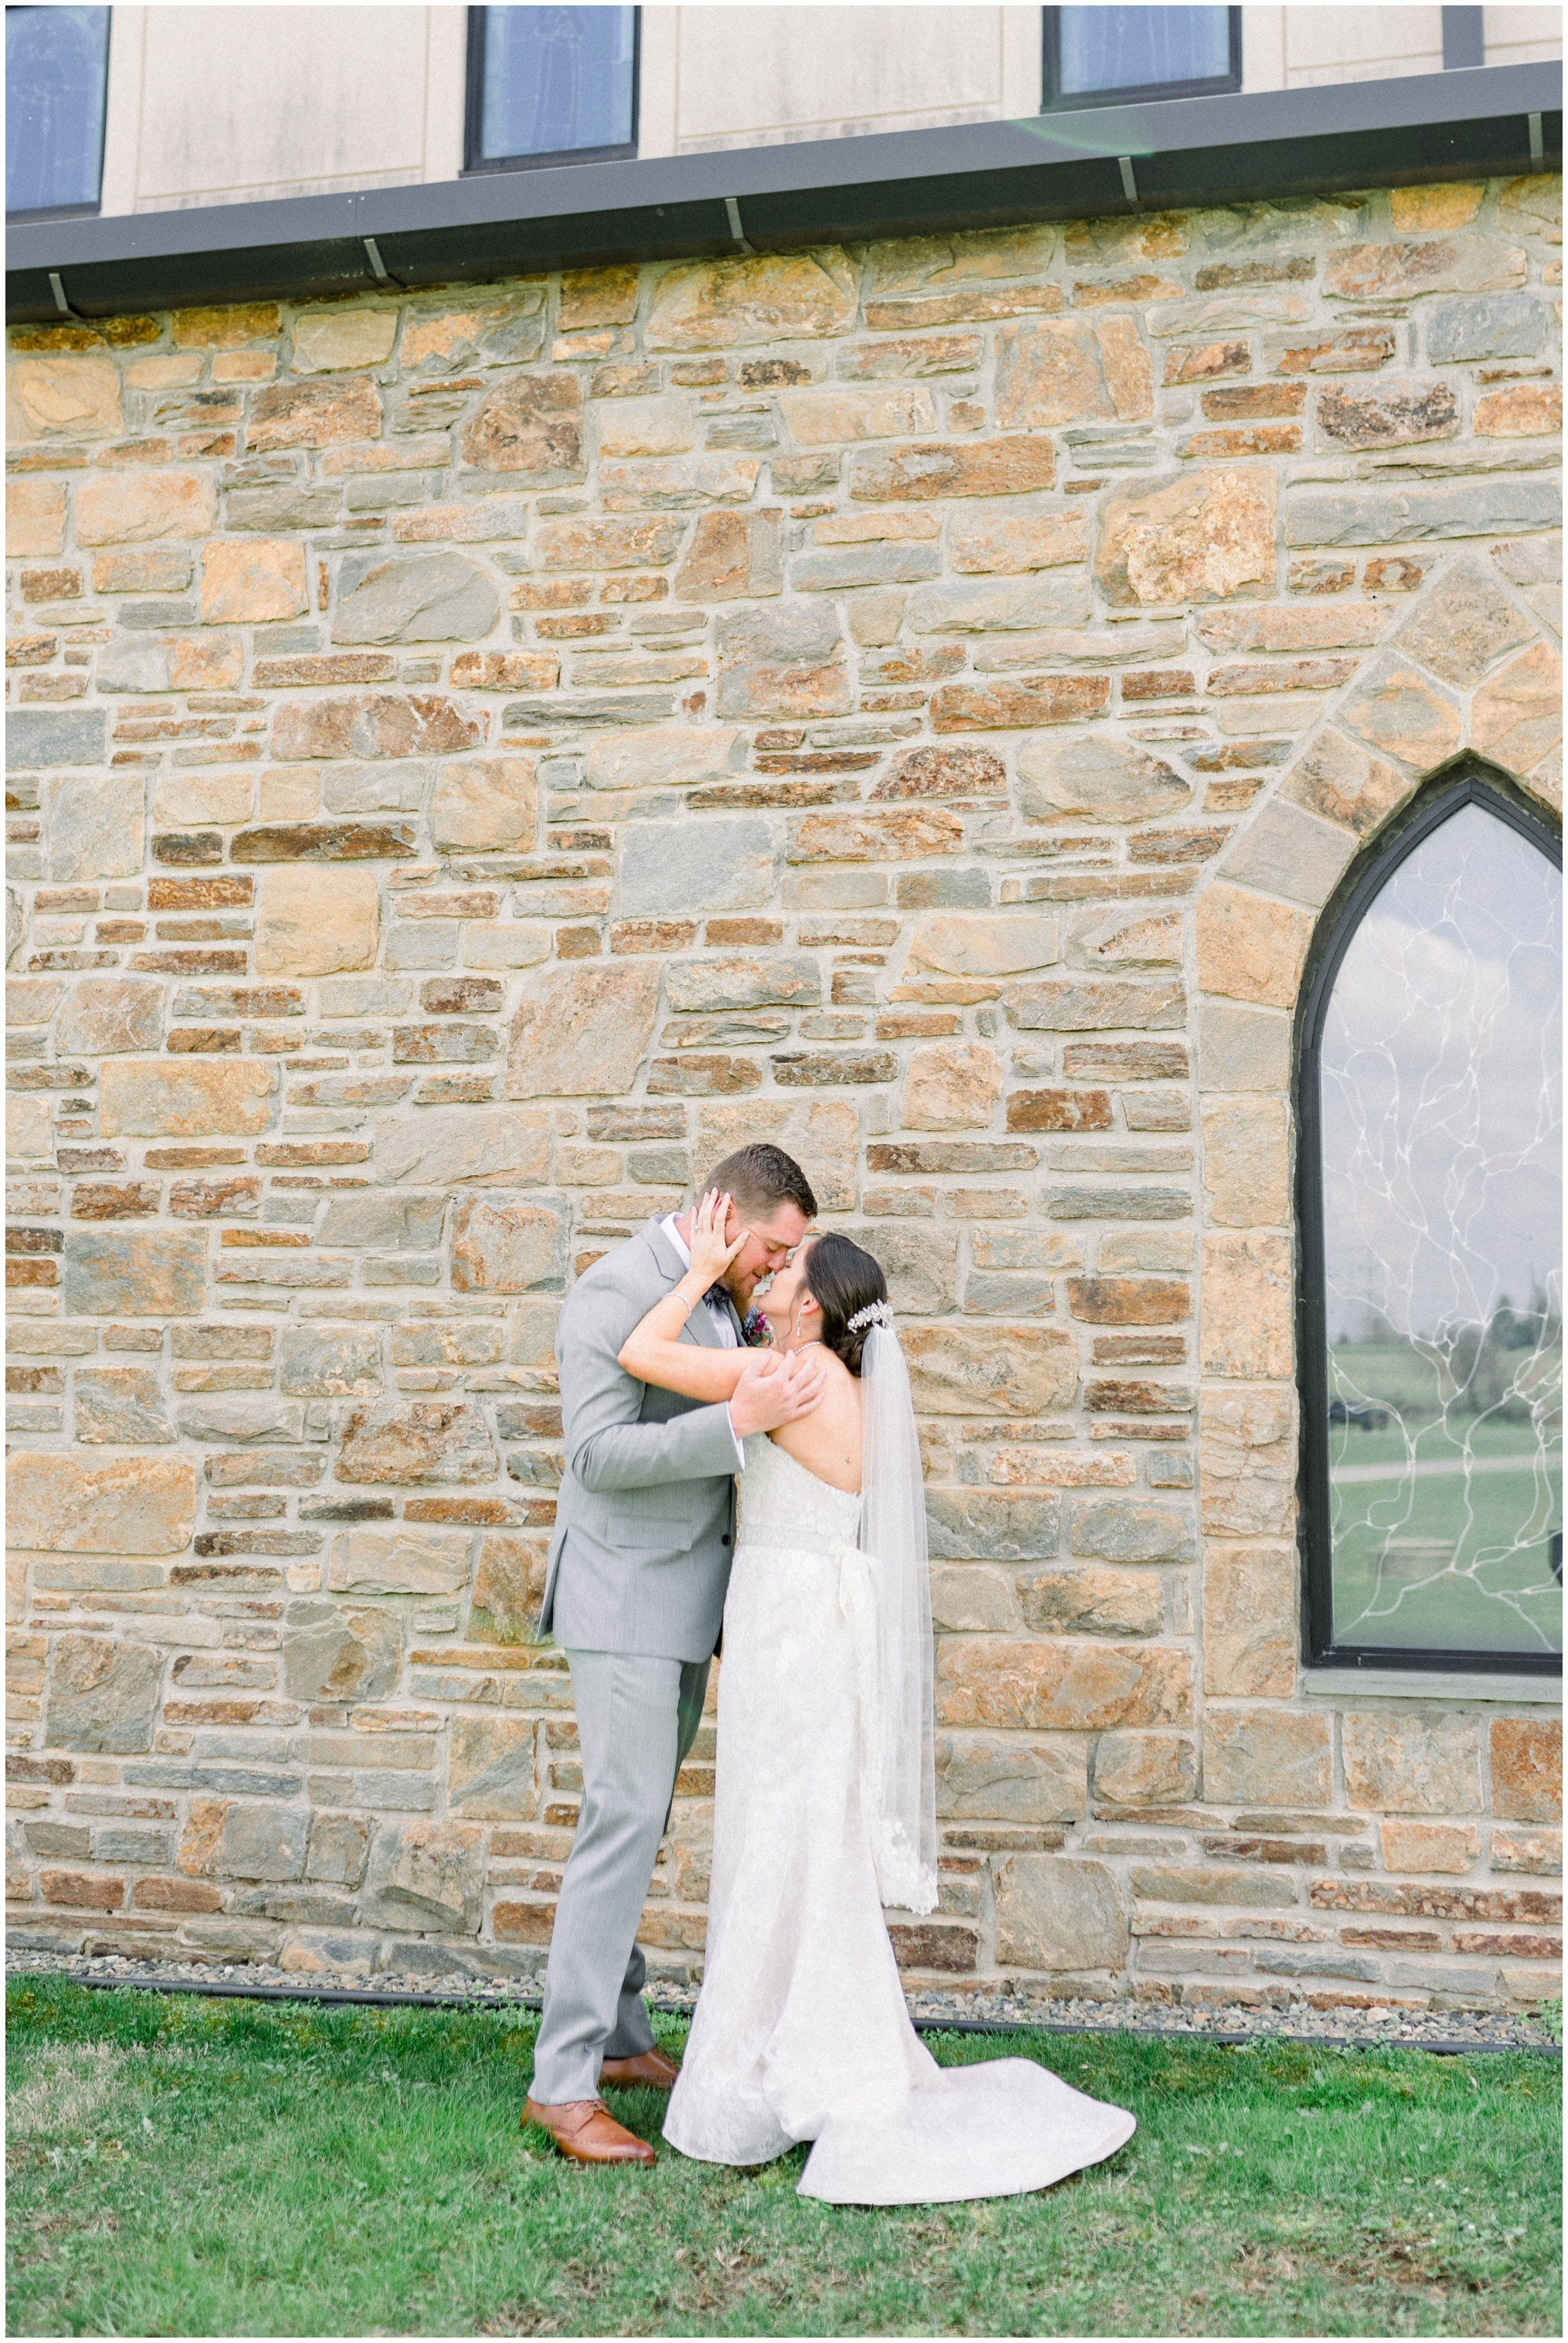 Krista Brackin Photography | April Wedding at The Carriage House at Rockwood Park_0037.jpg